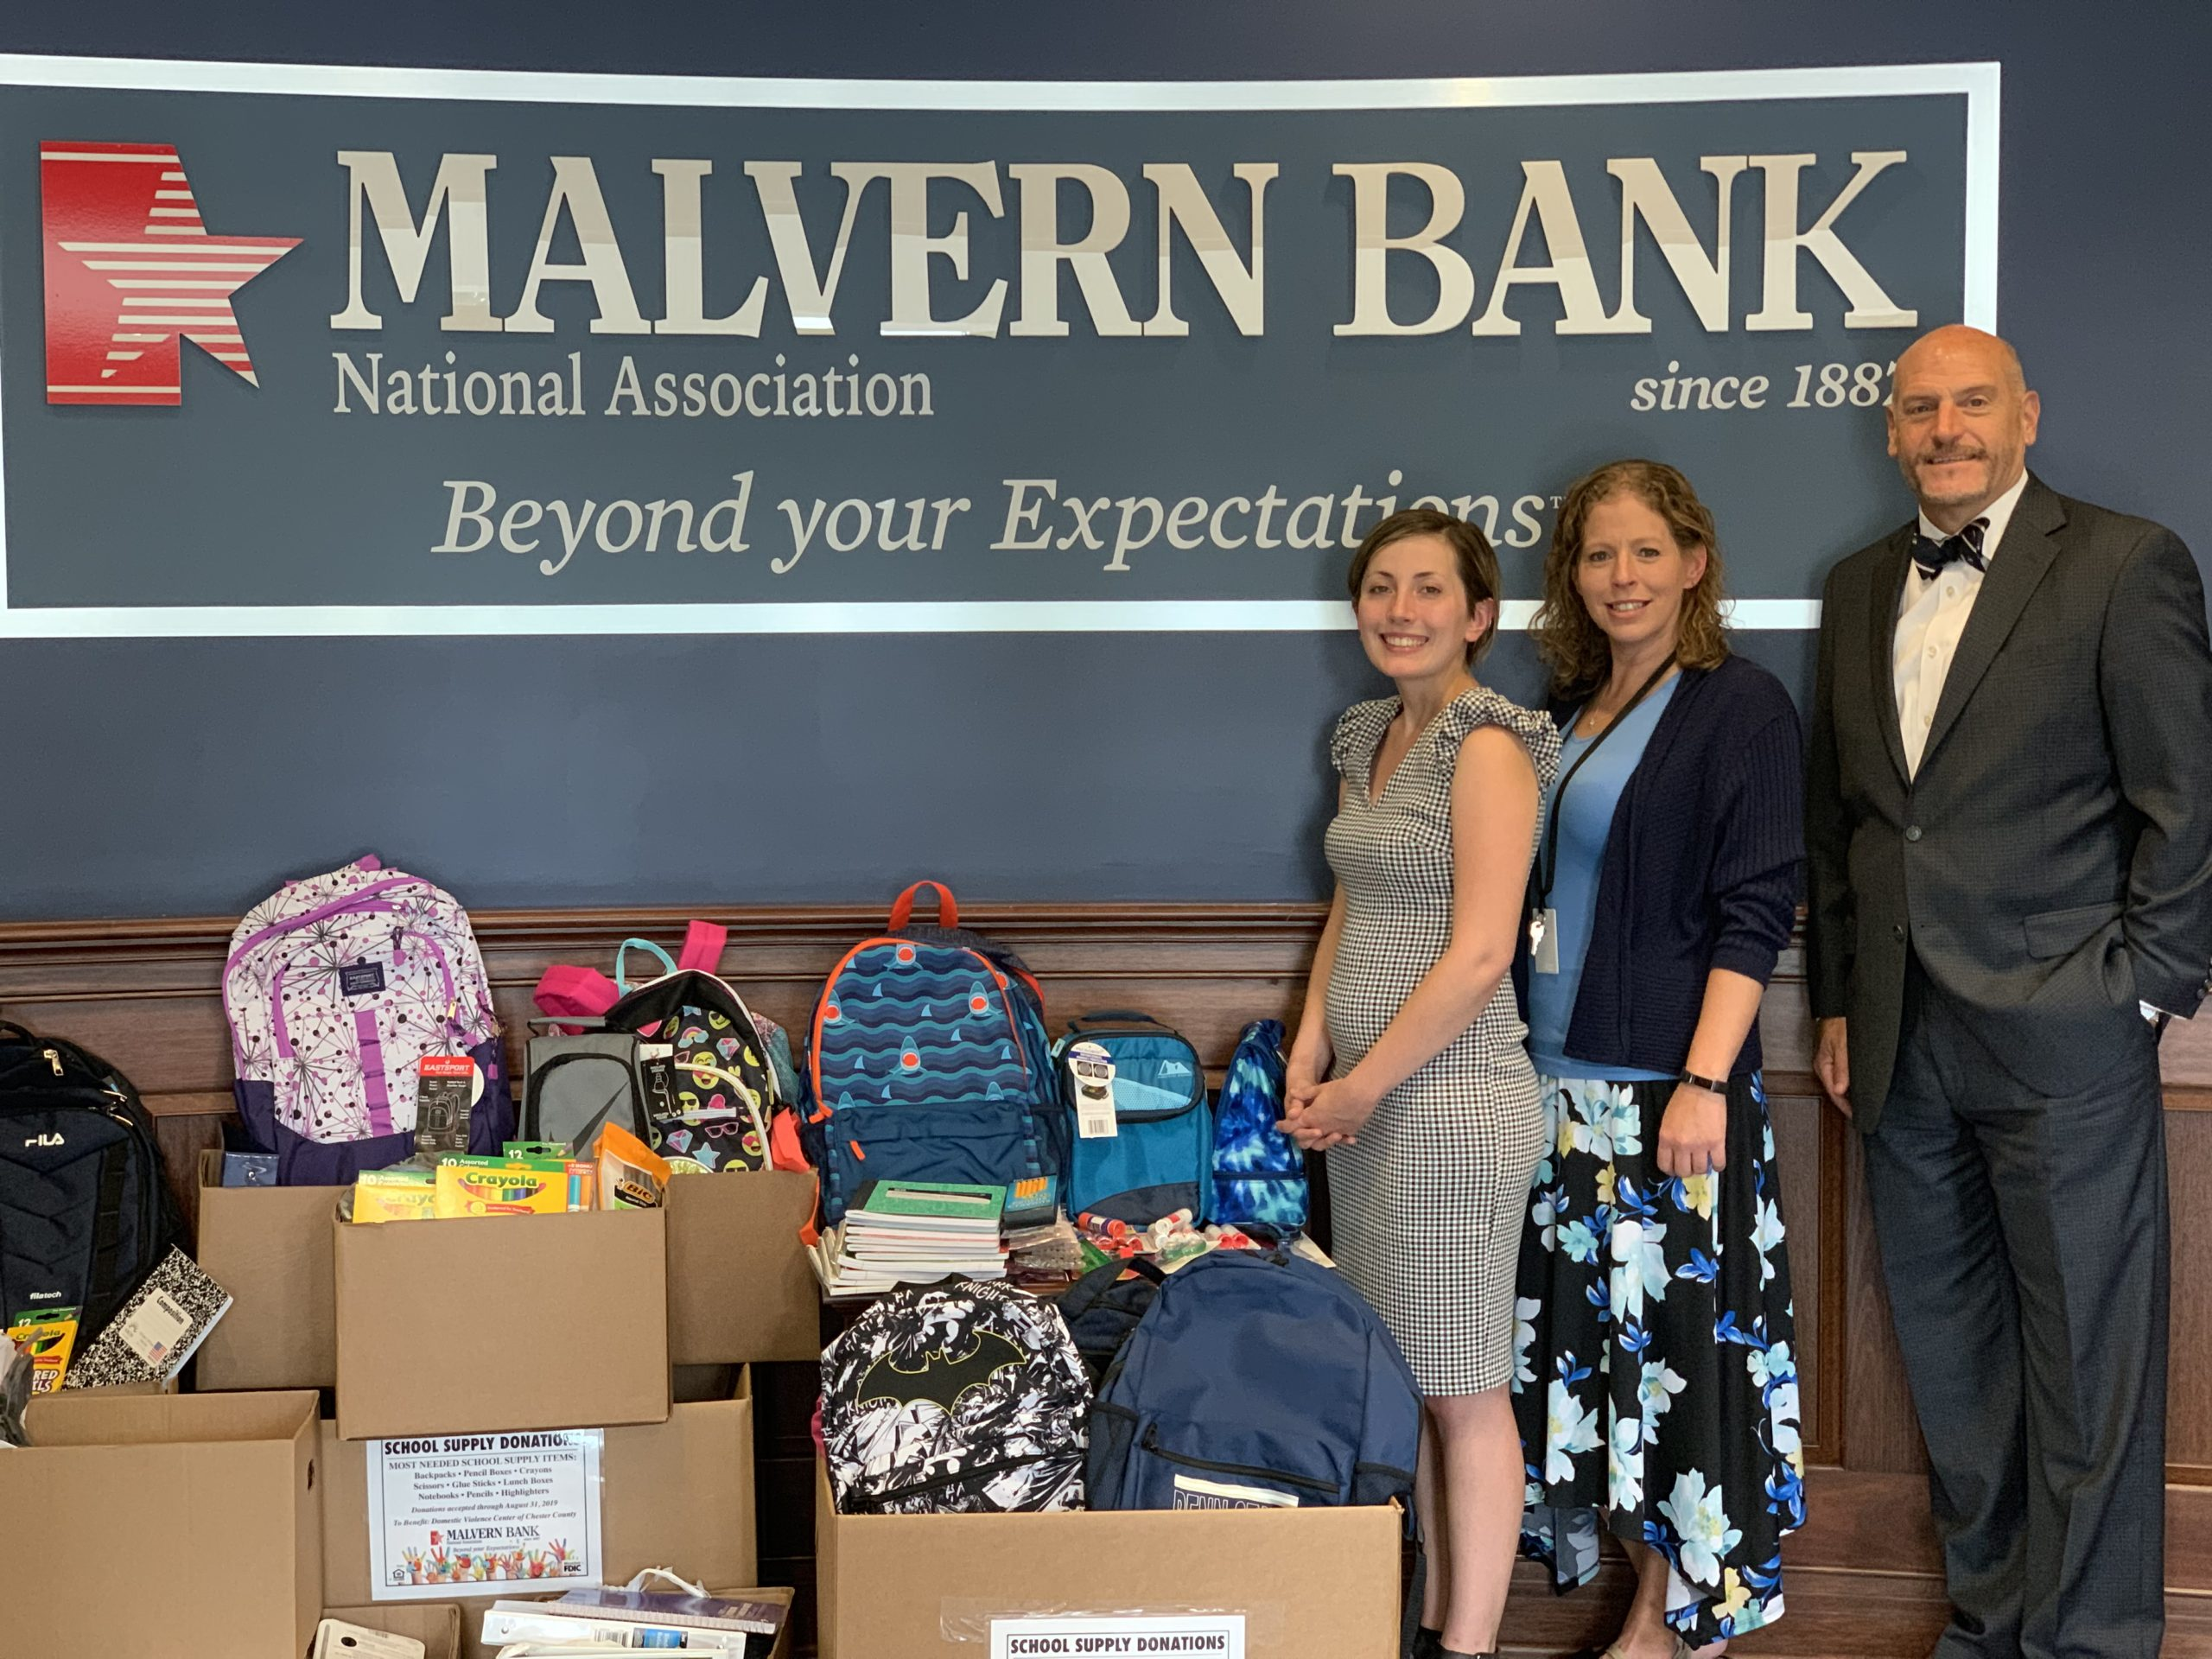 Malvern Bank Makes a Difference, Donates School Supplies to Local Children in Need